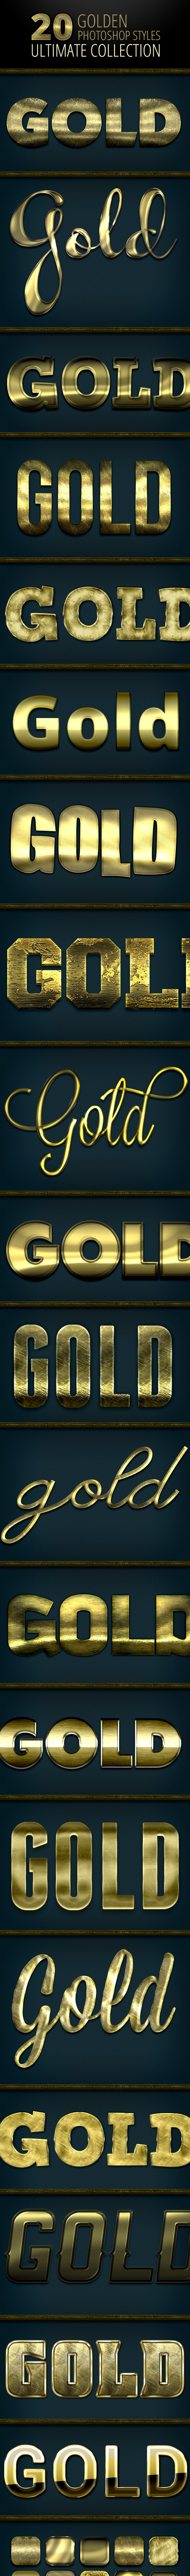 20 Gold Styles - Ultimate Collection - Text Effects Styles